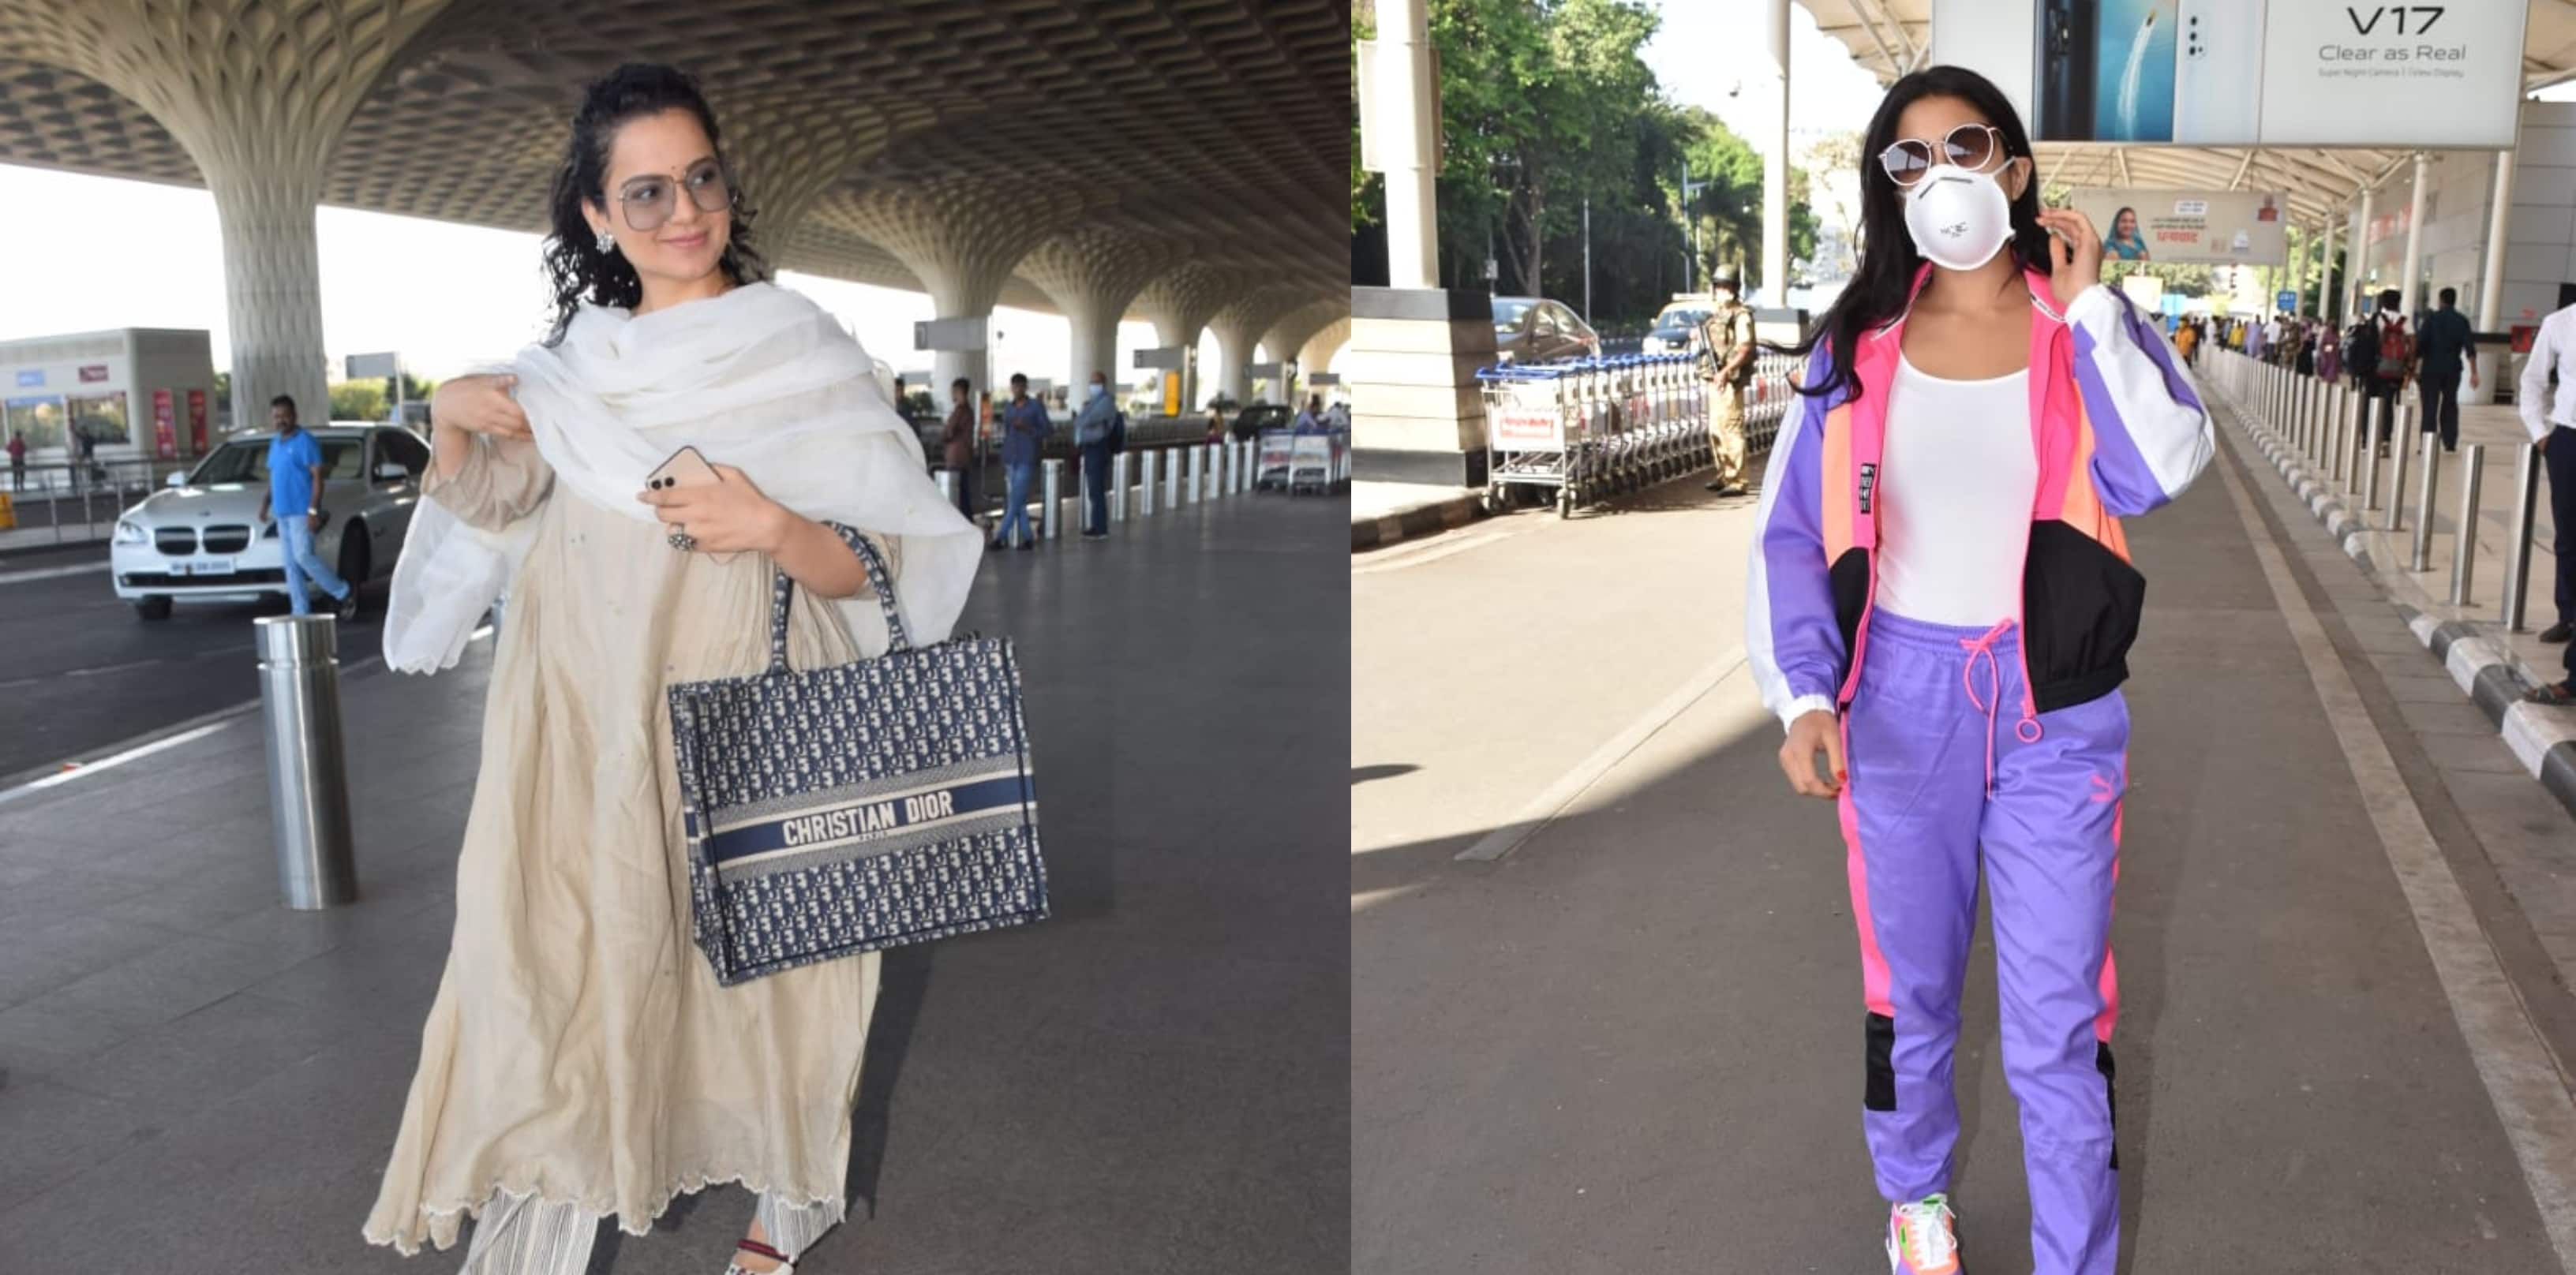 Spotted: Sara Ali Khan Wears A Mask To The Airport While Kangana Ranaut Flaunts Her Dior Bag!